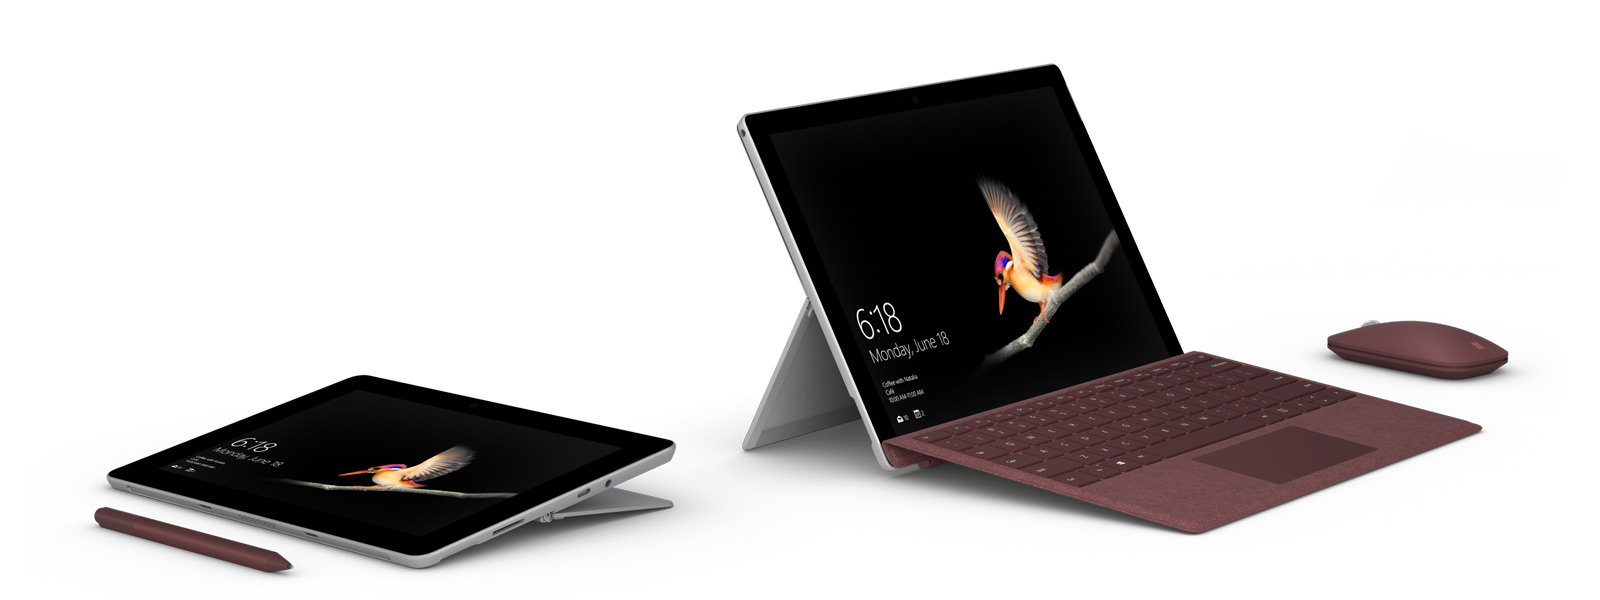 Surface Go in Laptop Mode next to Surface Go in Studio Mode